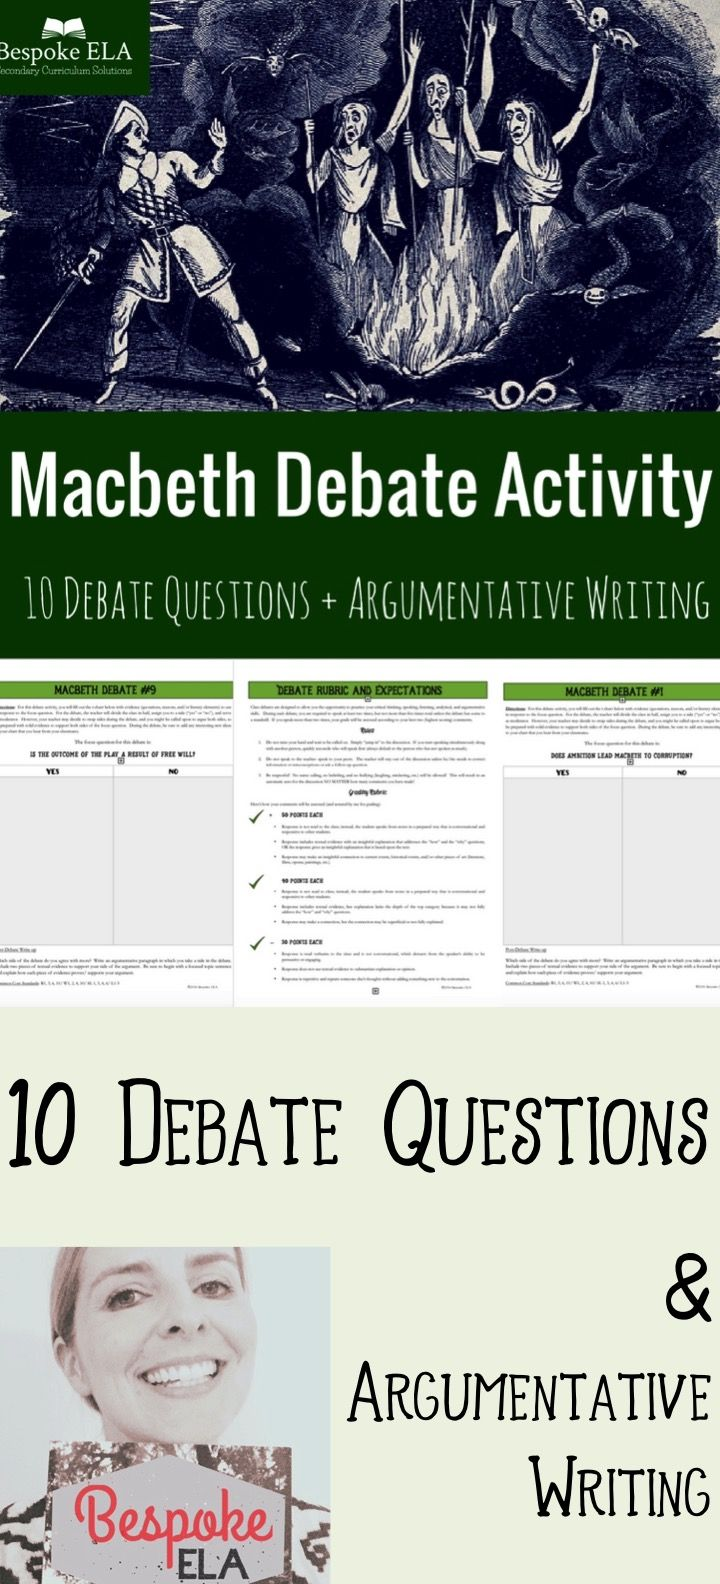 """In this set of debate activities by Bespoke ELA, students will participate in a series of debates in response to """"yes/no"""" questions about Shakespeare's play Macbeth. There are 10 debate questions in all.  Students will collect evidence to support both sides of the argument and then debate a side with their peers in order to practice constructing logical arguments supported by textual evidence. Each debate chart is followed by an argumentative writing assignment."""